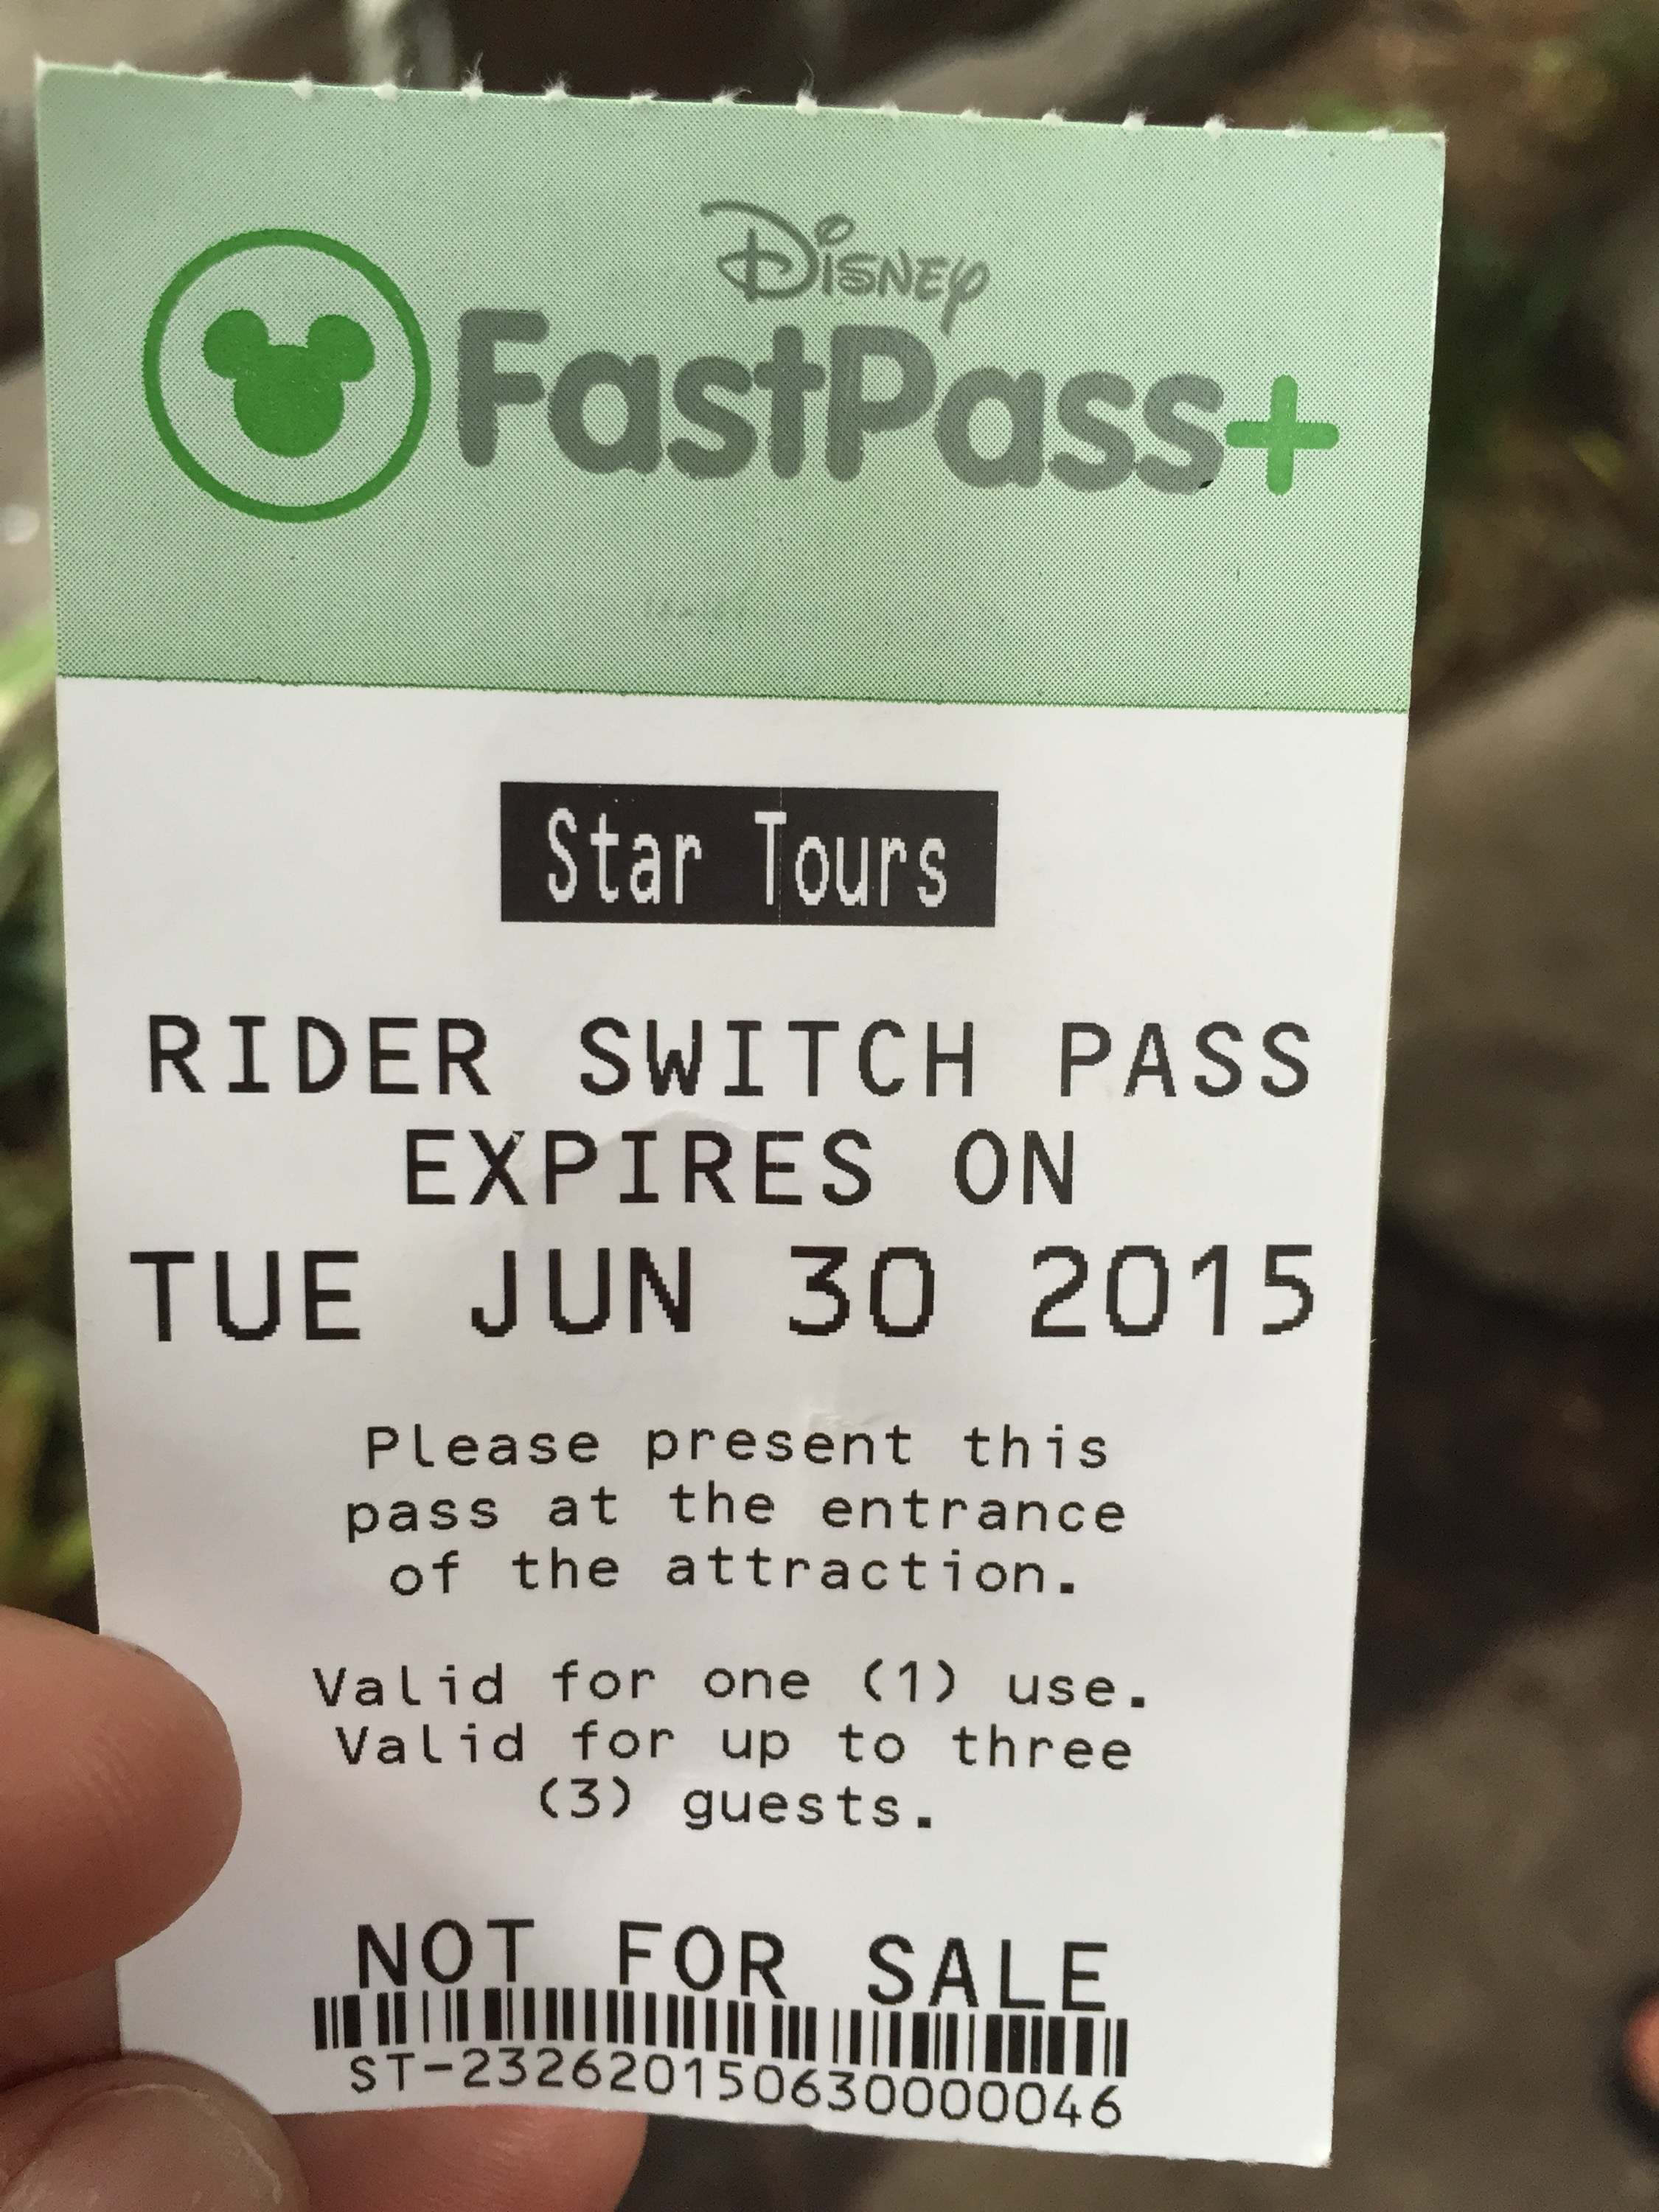 Rider Switch Pass